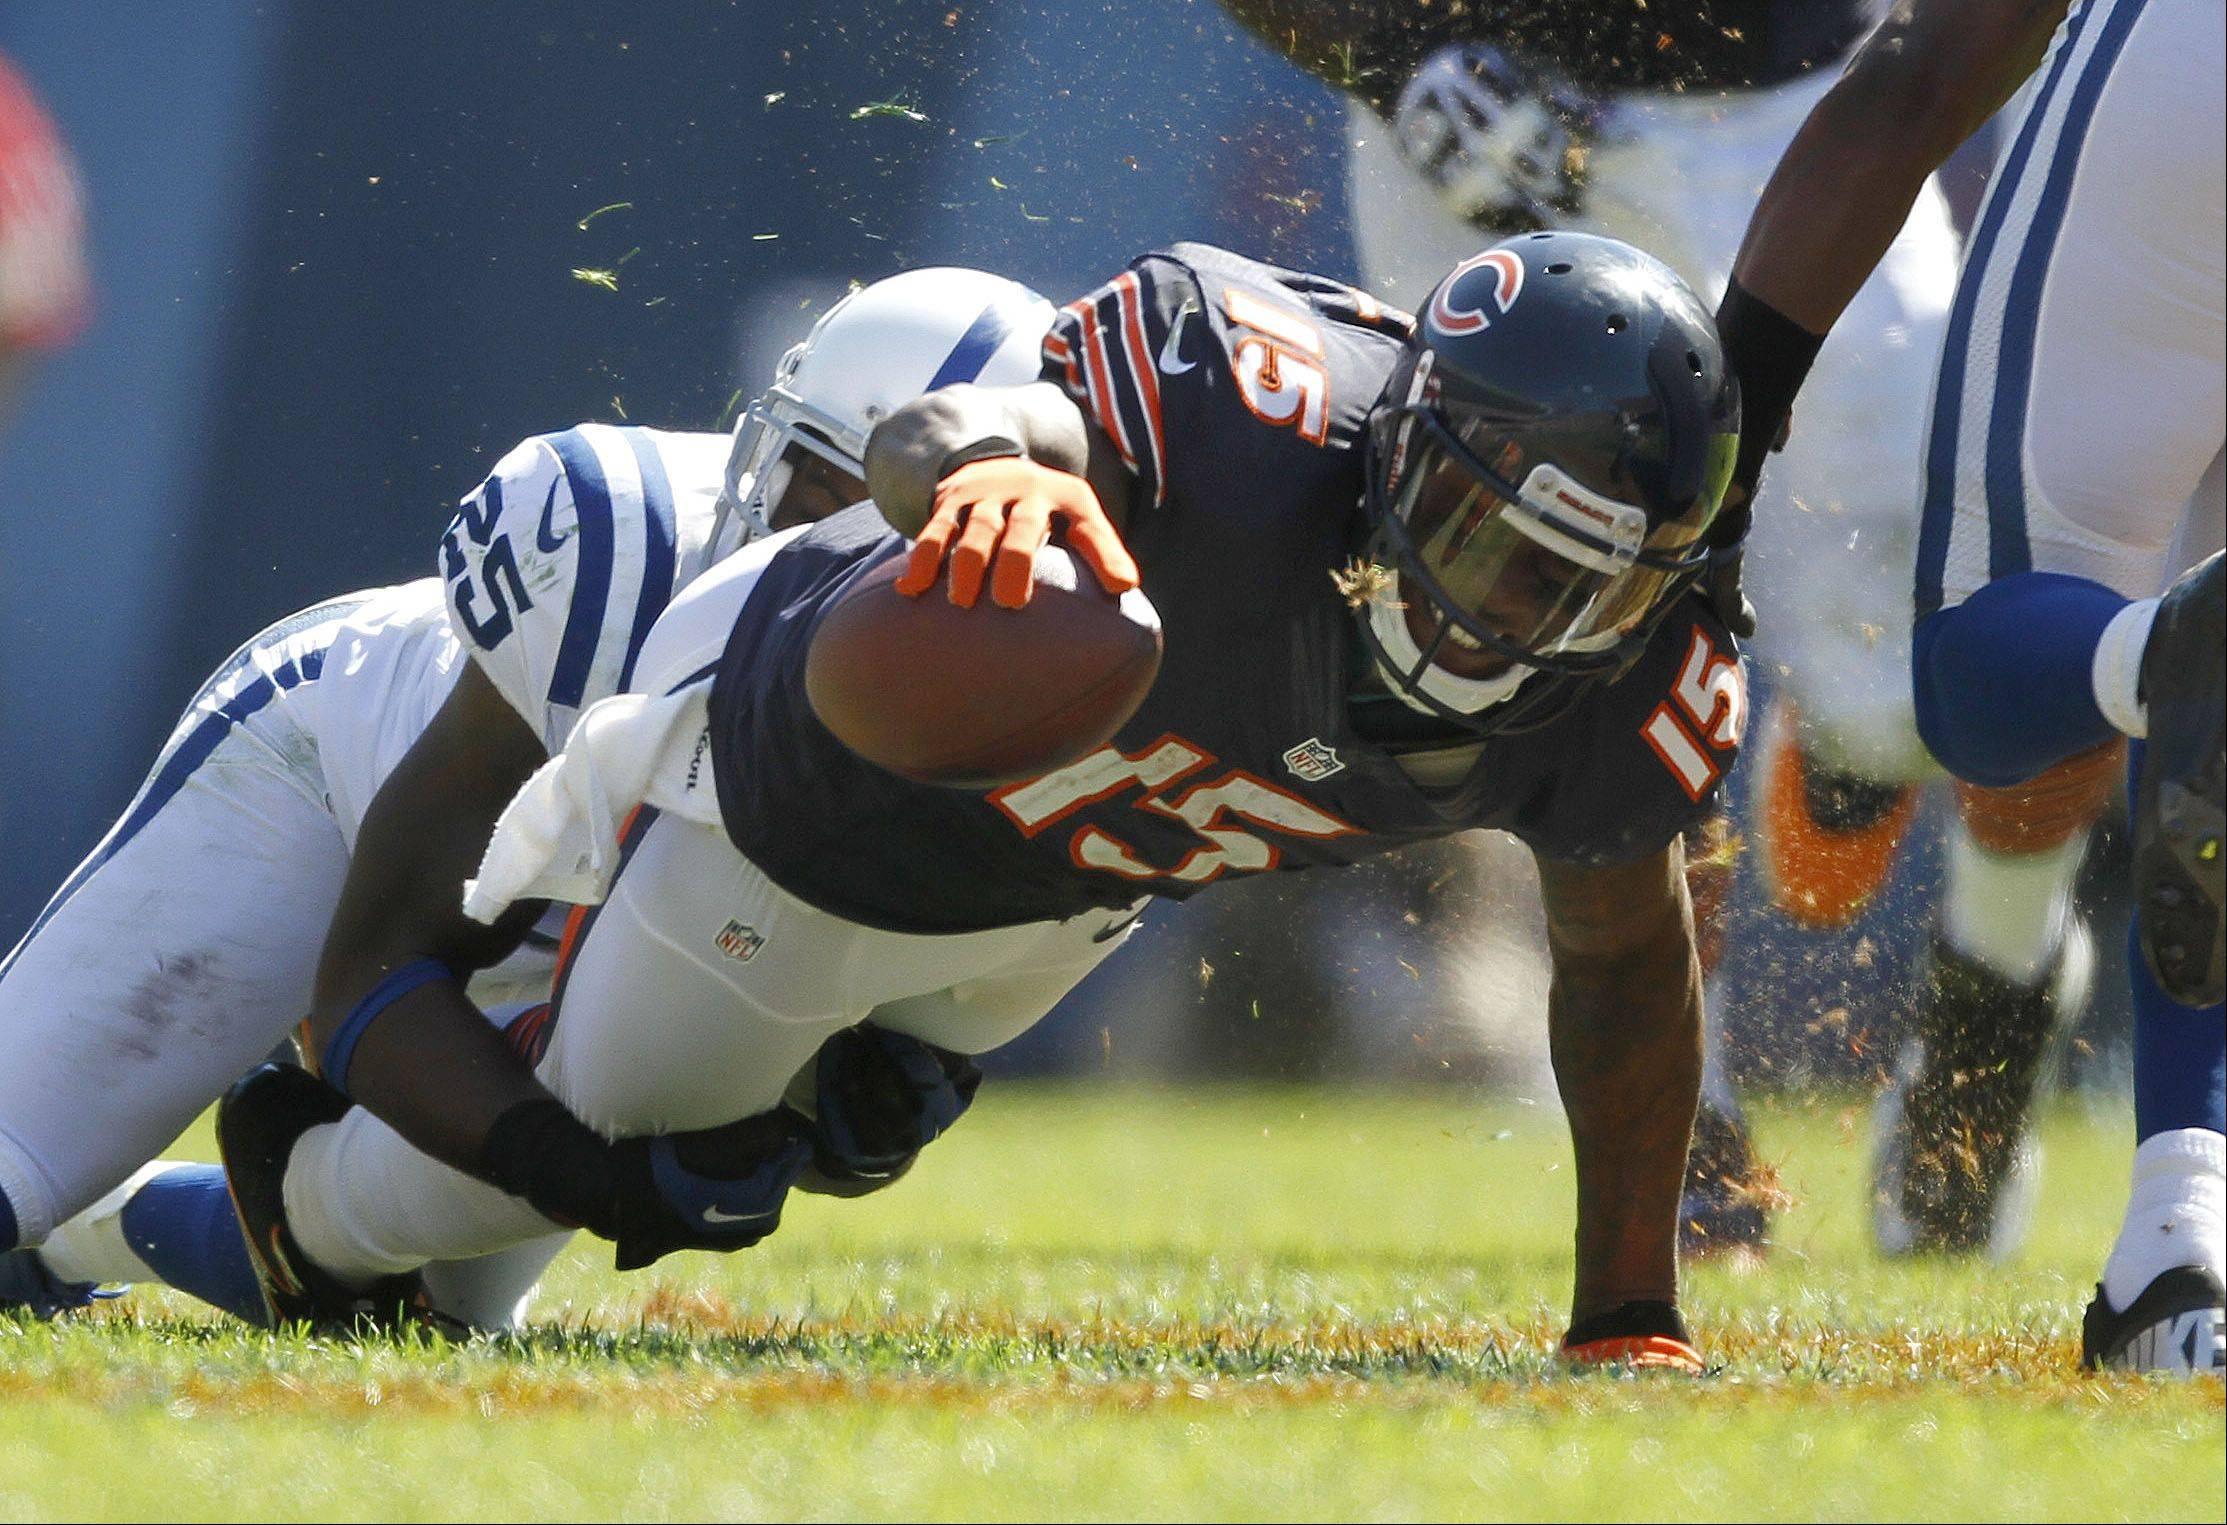 Chicago Bears wide receiver Brandon Marshall stretches for the first down marker during the Bears season opener.